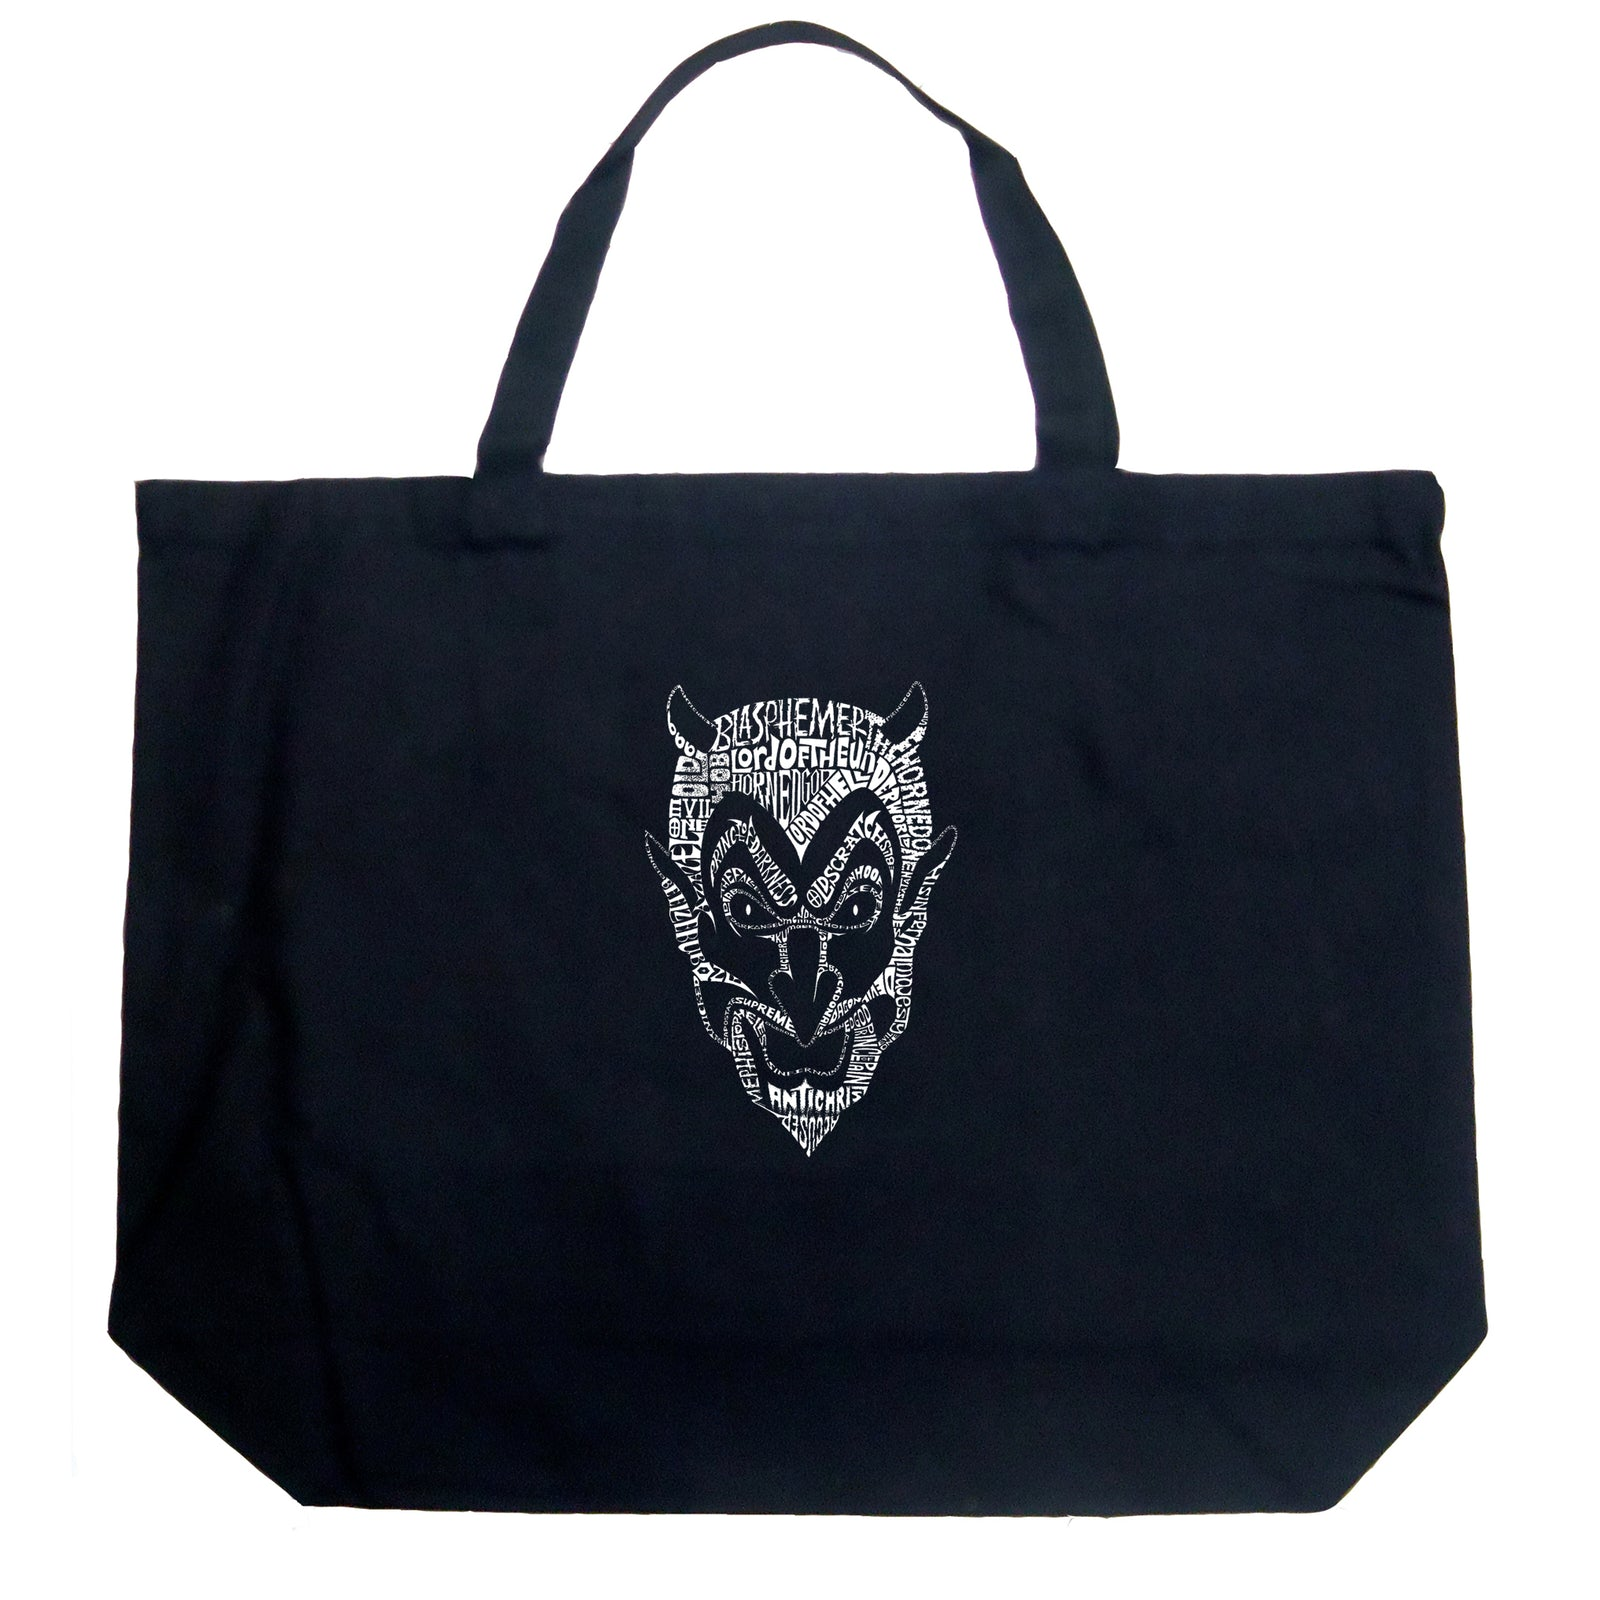 Large Tote Bag - THE DEVIL'S NAMES